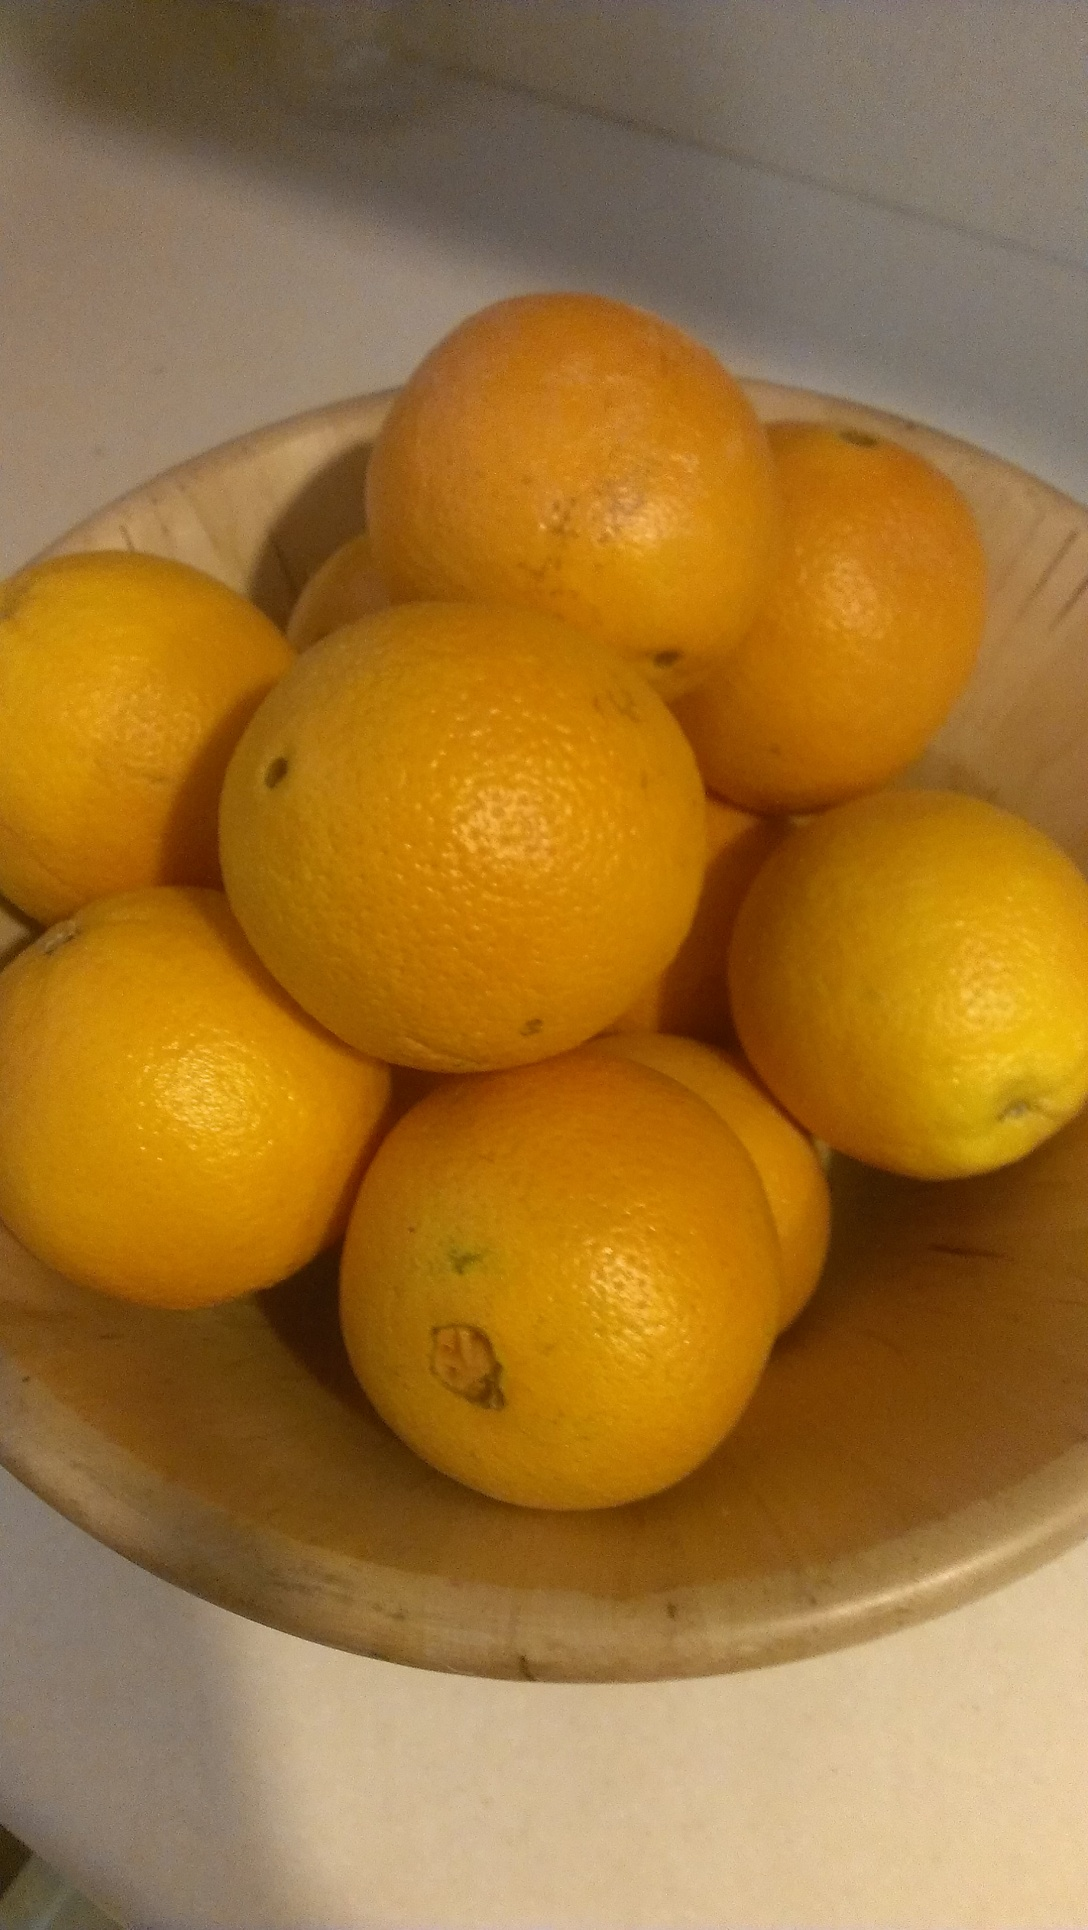 SR 4.87 ($1.30) for 12 of these oranges